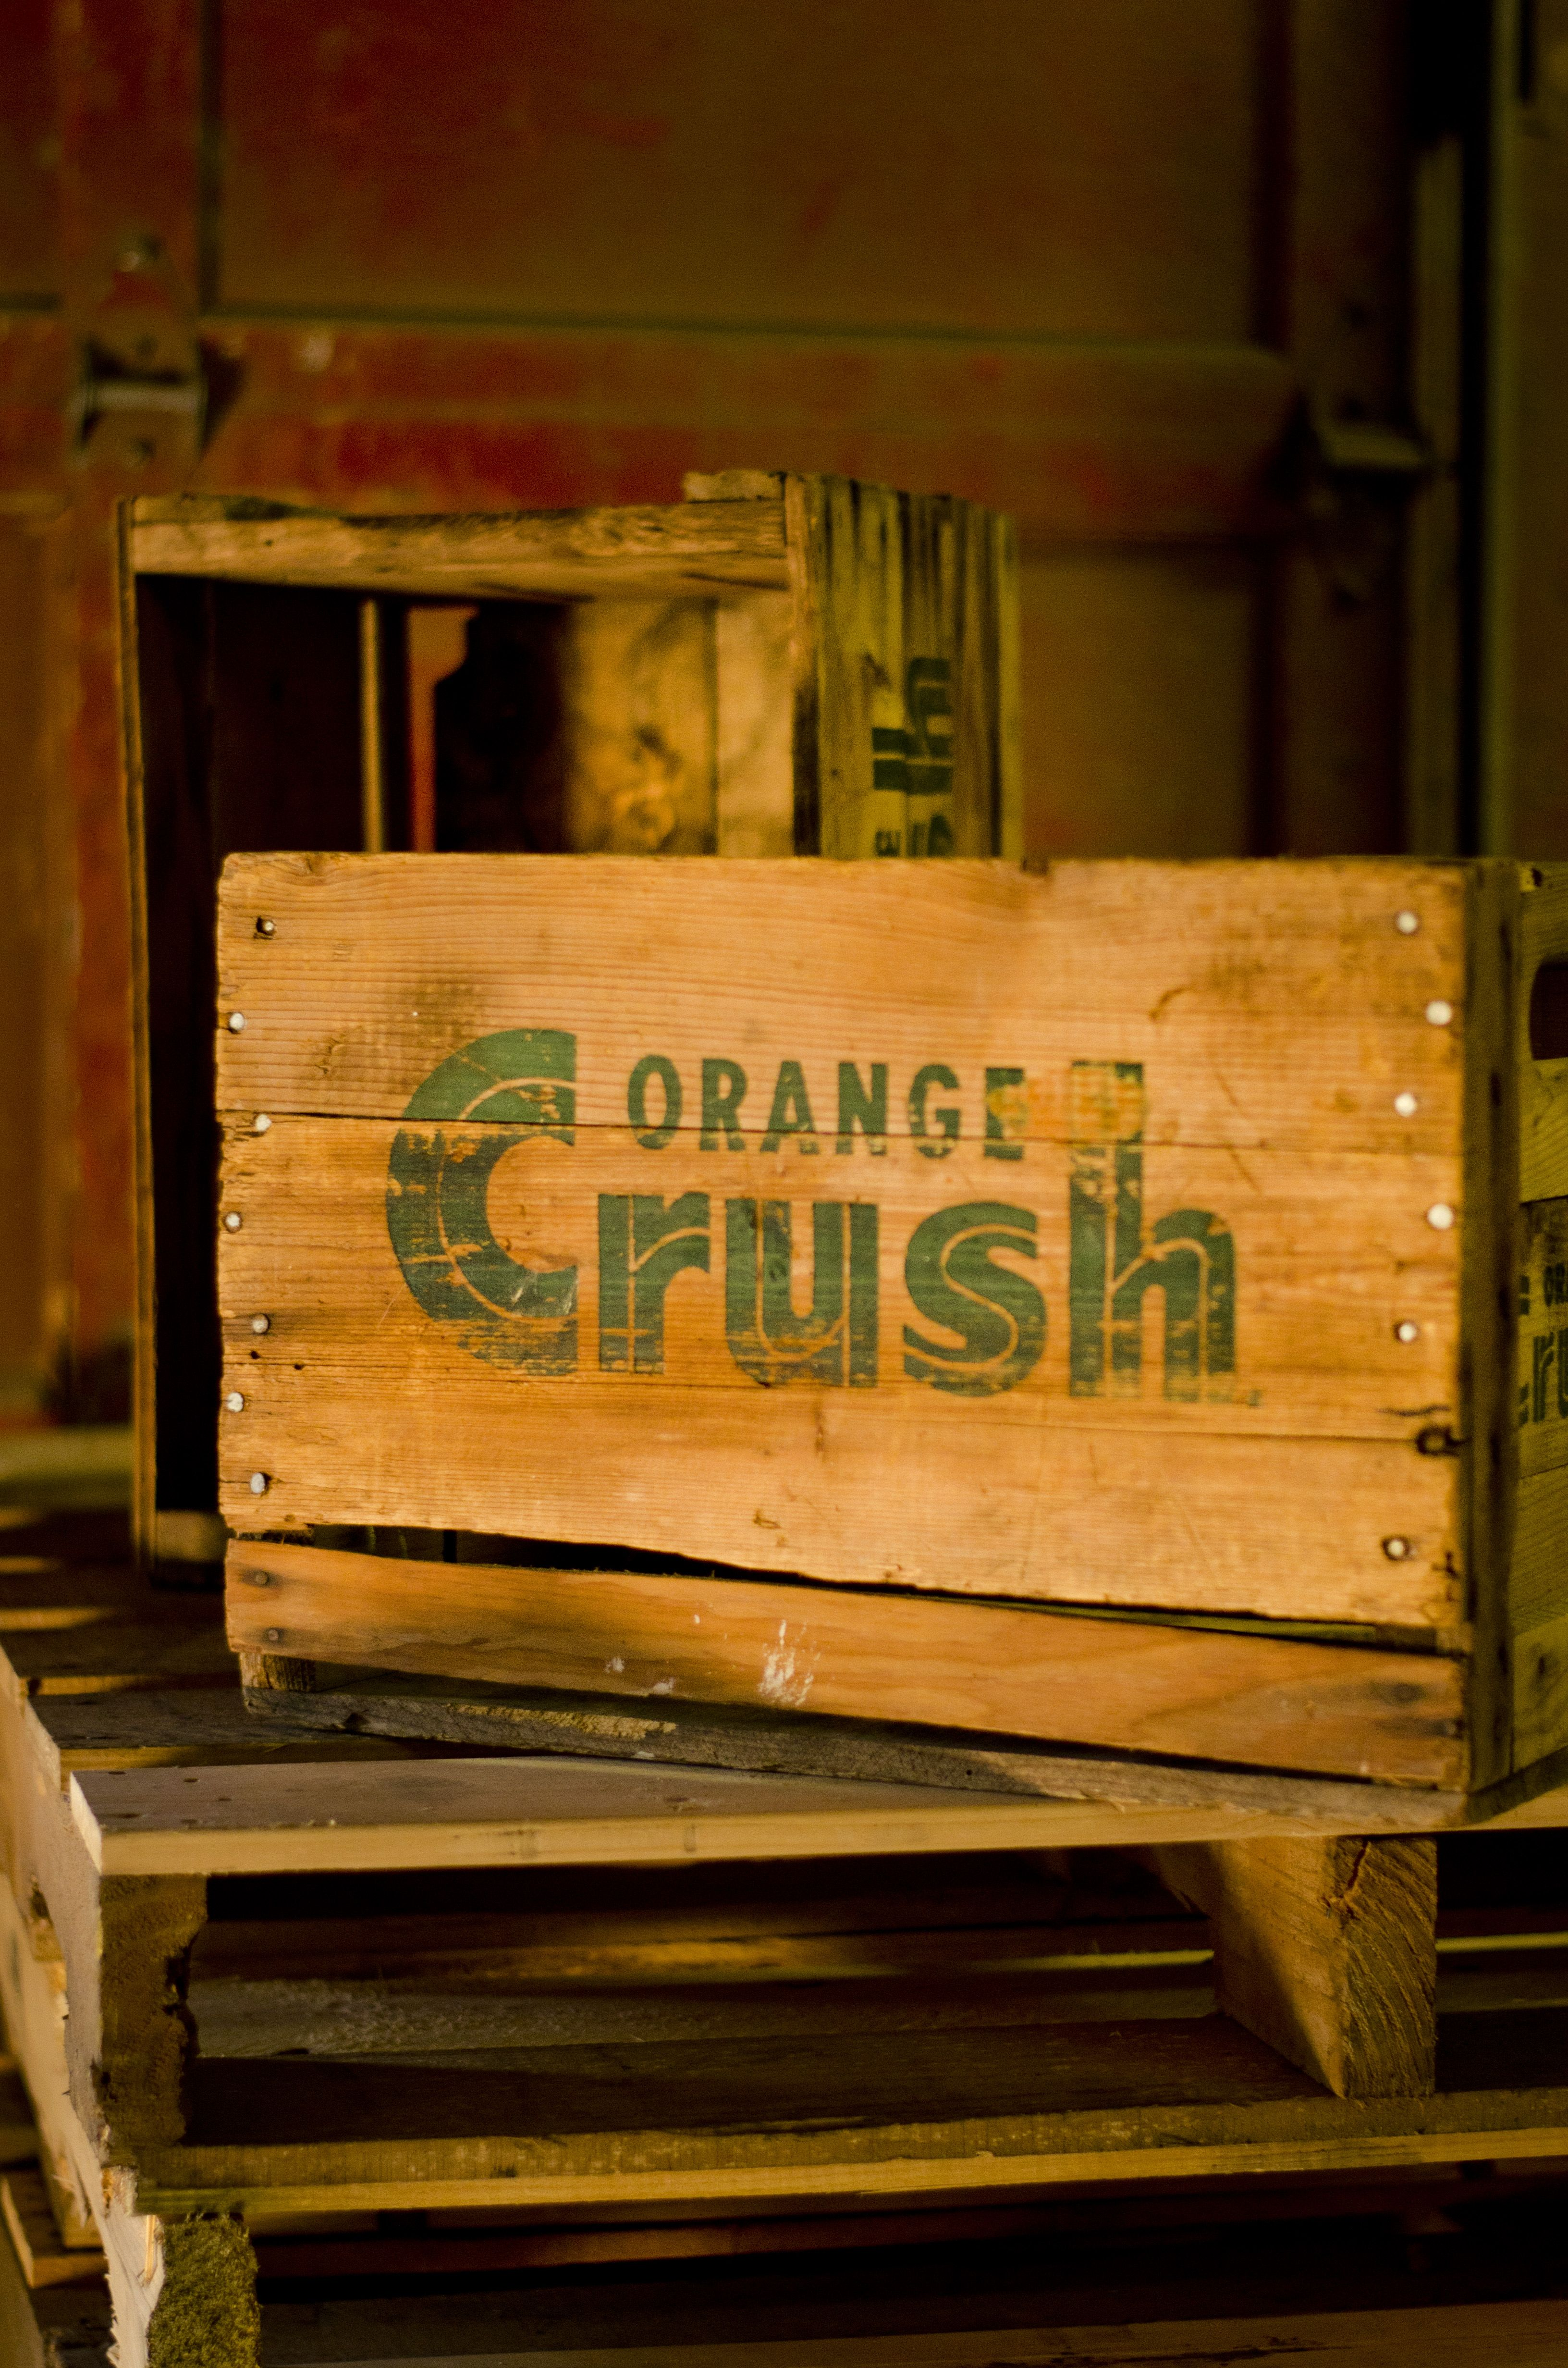 Vintage Orange Crush Crate Excellent For Storage Or Even Just As A Collector S Item Crates For Sale Apple Crates Beer Crate